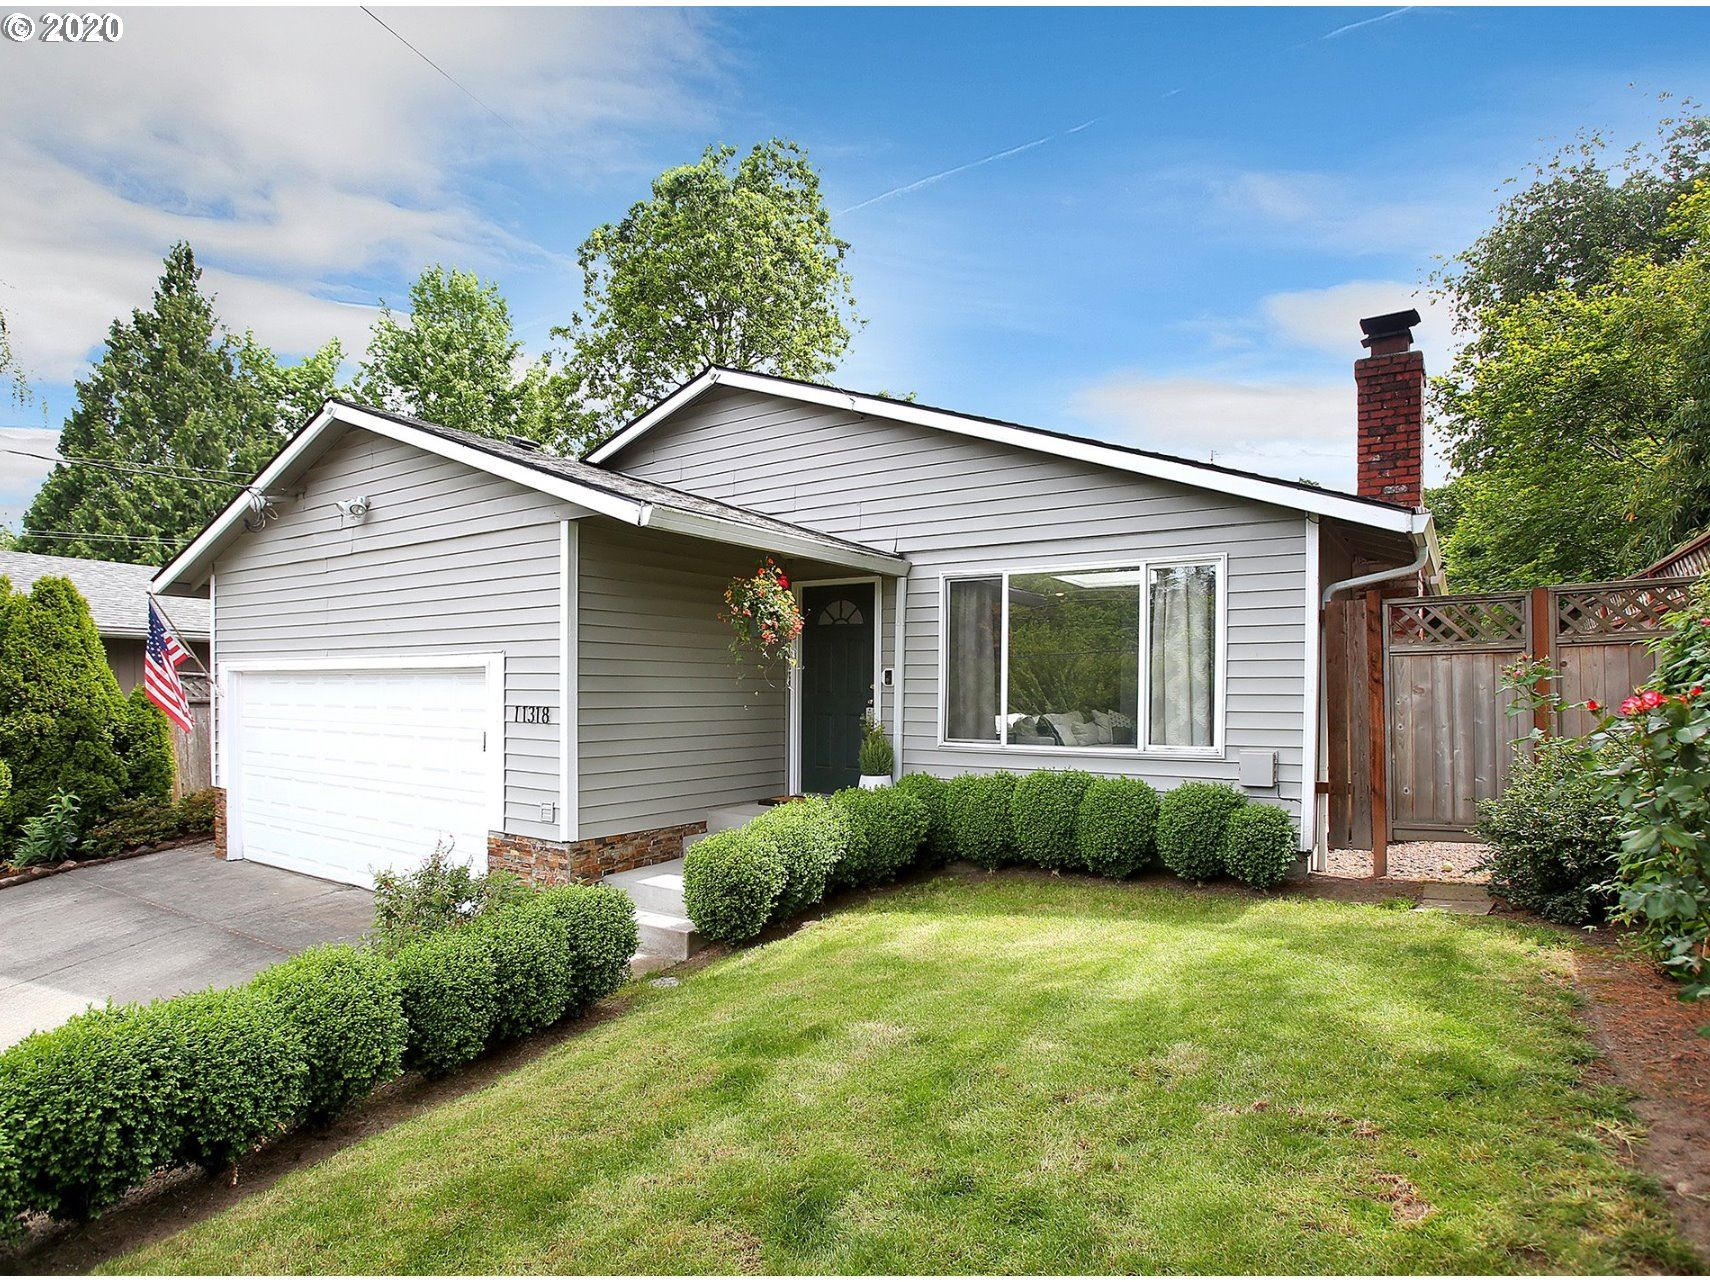 11318 SW 49TH AVE, Portland, OR 97219 - MLS#: 20137144